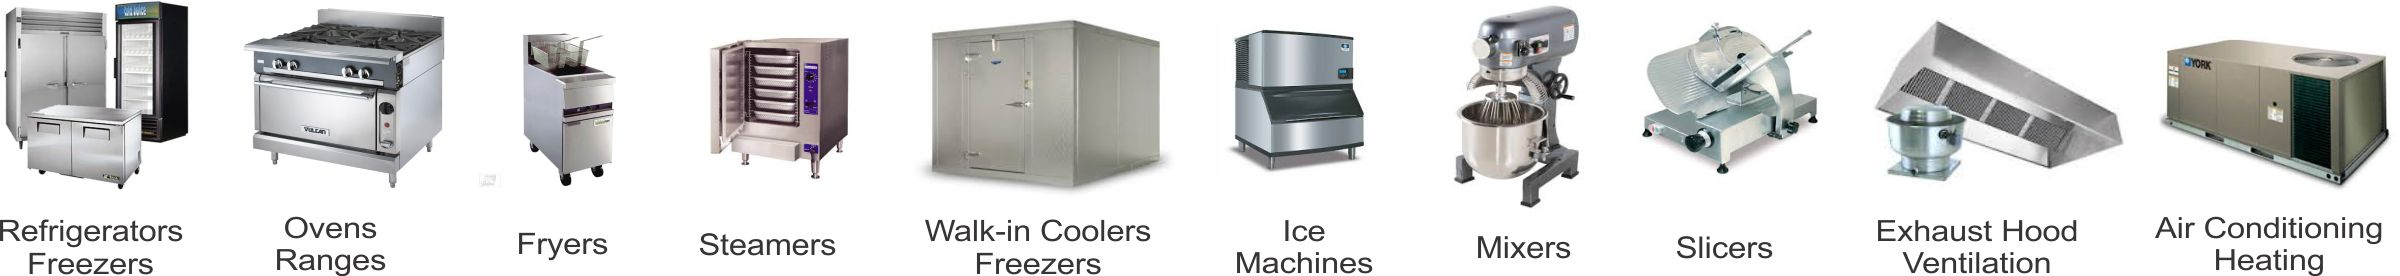 Ice Machine Preventive Maintenance